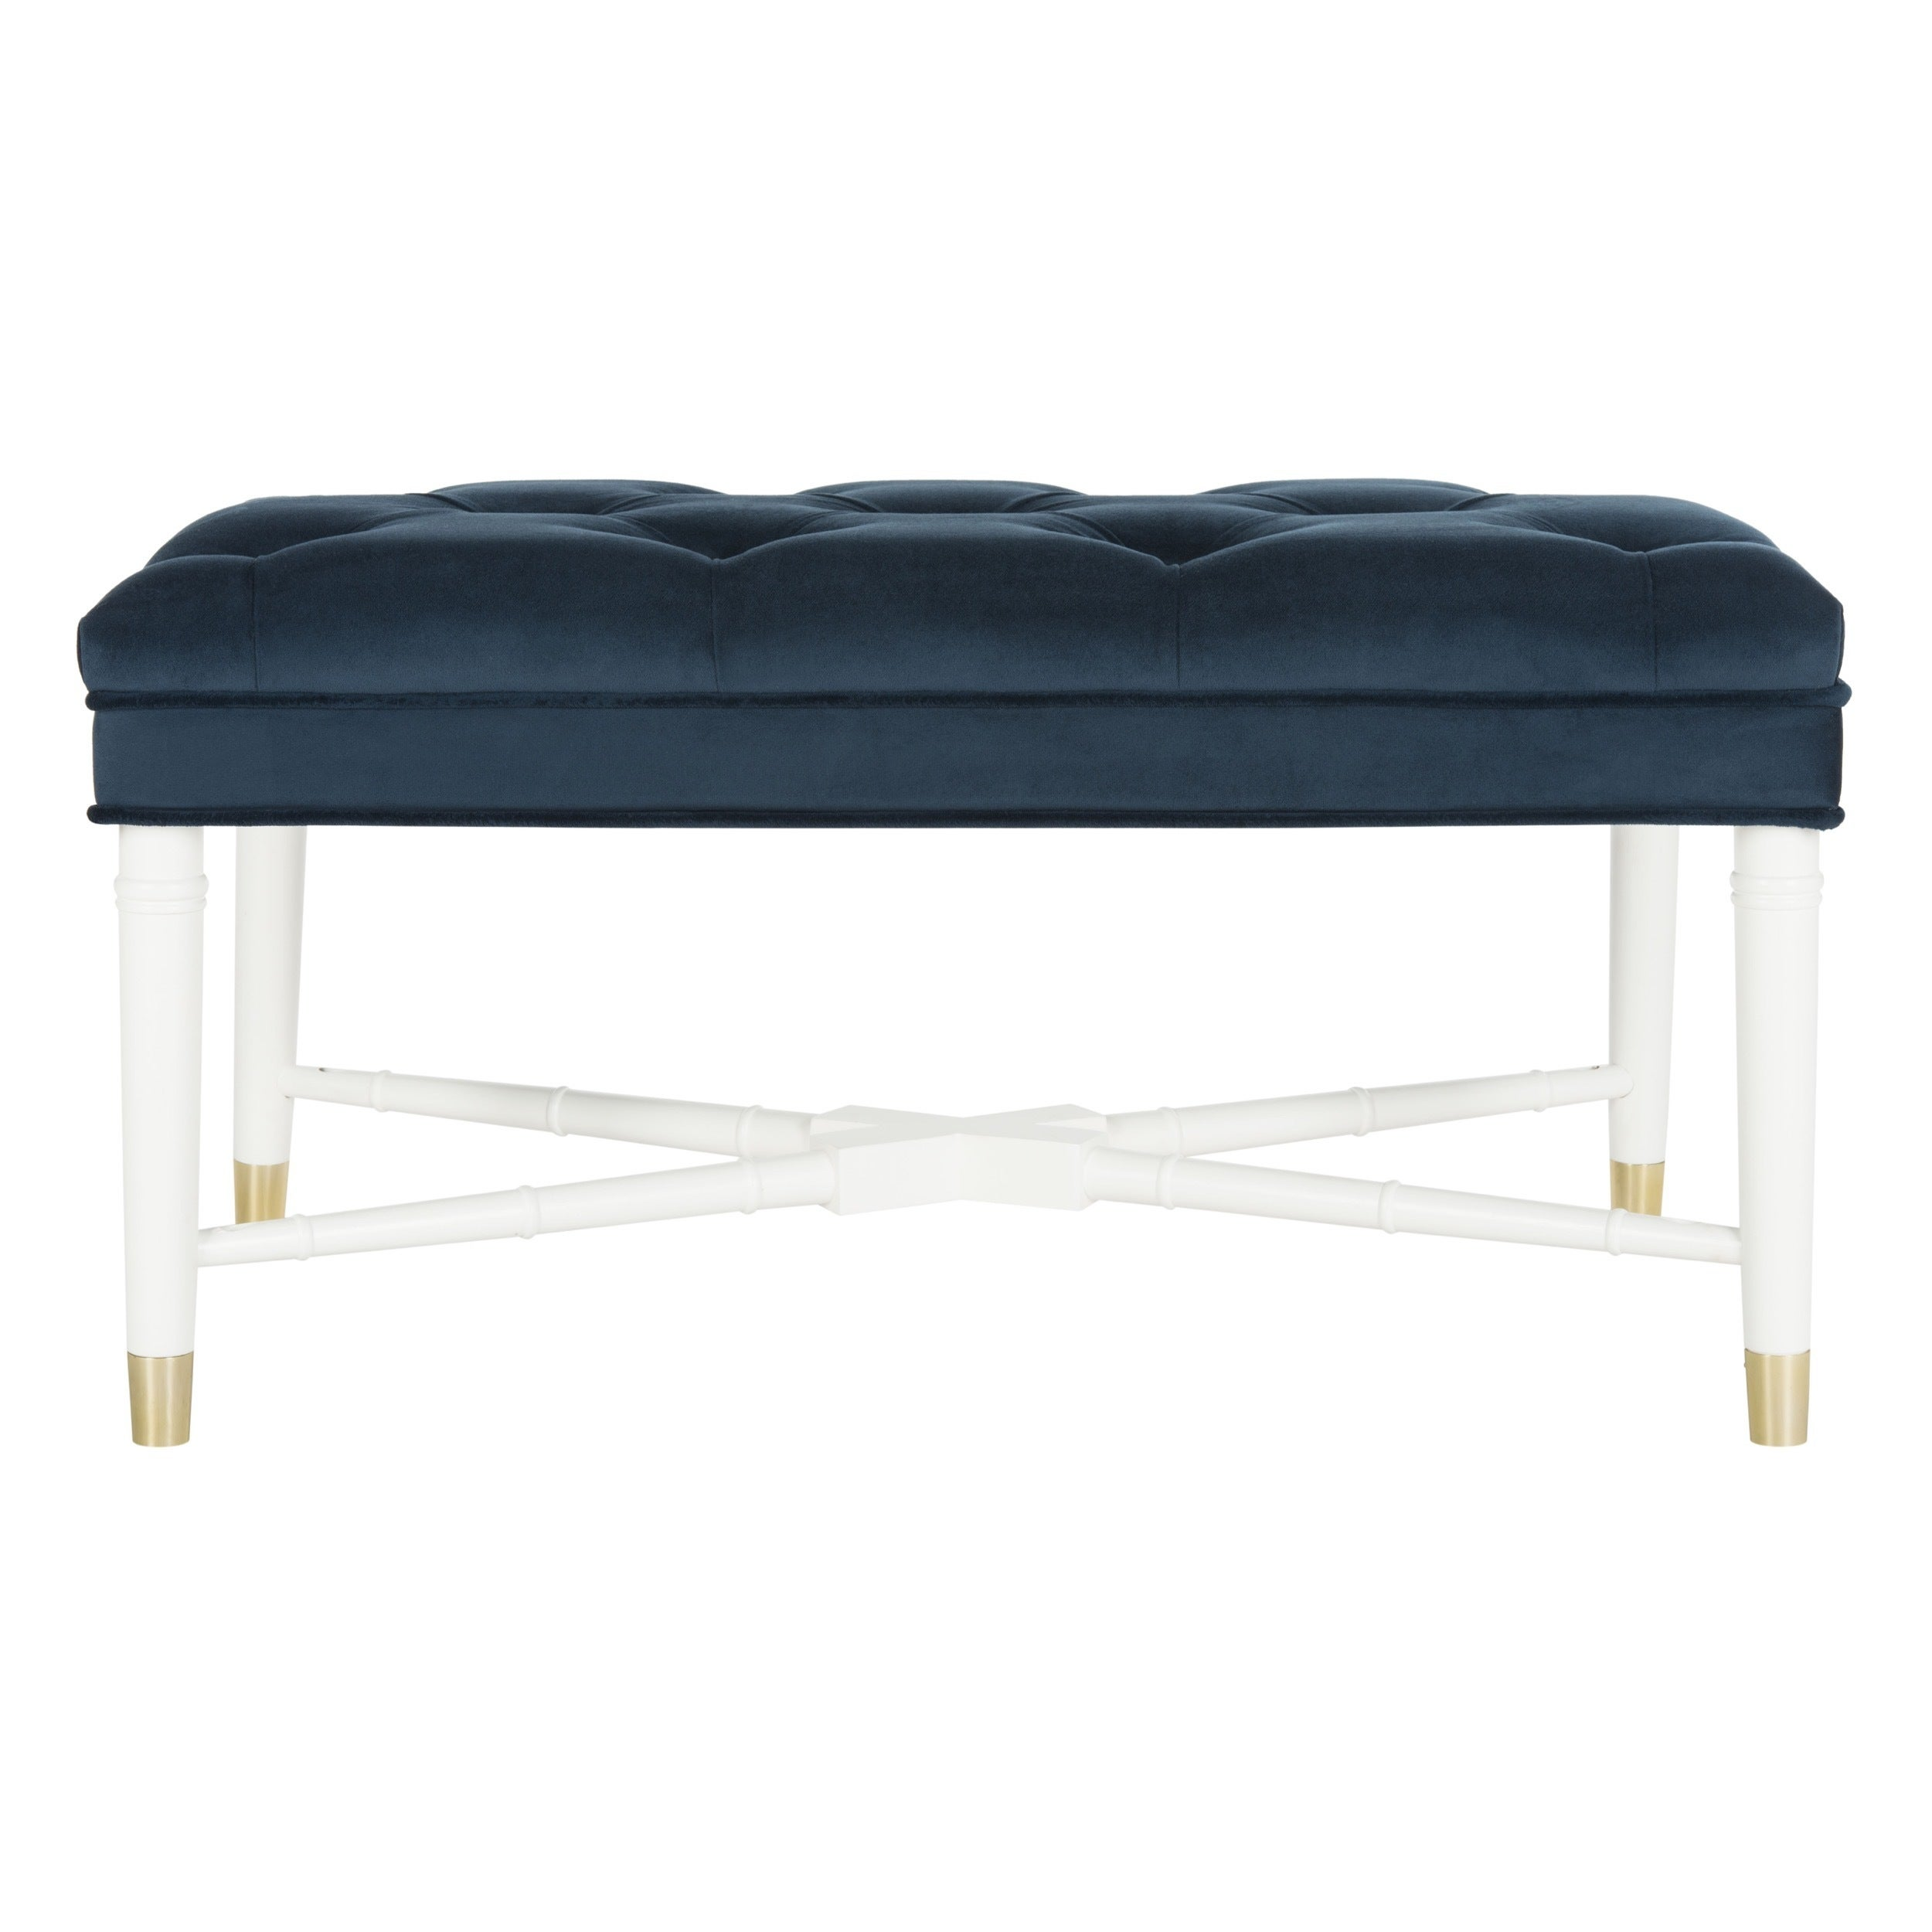 zoom home bench neil in legs navy x to tufted w hover chic velvet on dr